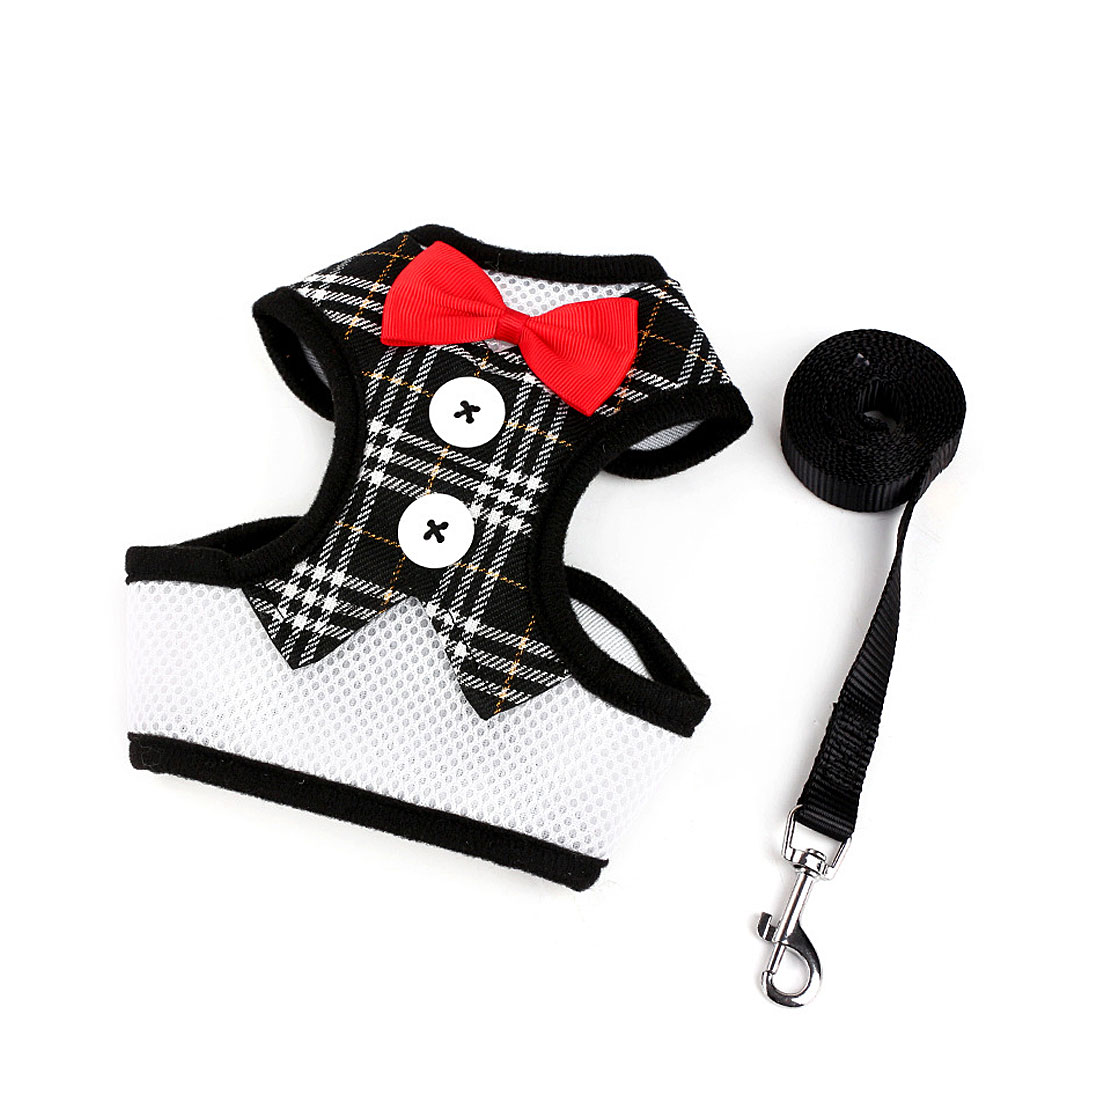 Adjustable Padded Small Dog Harness Breathable Dog Vest Bowtie Gentleman Suit Black Grid S